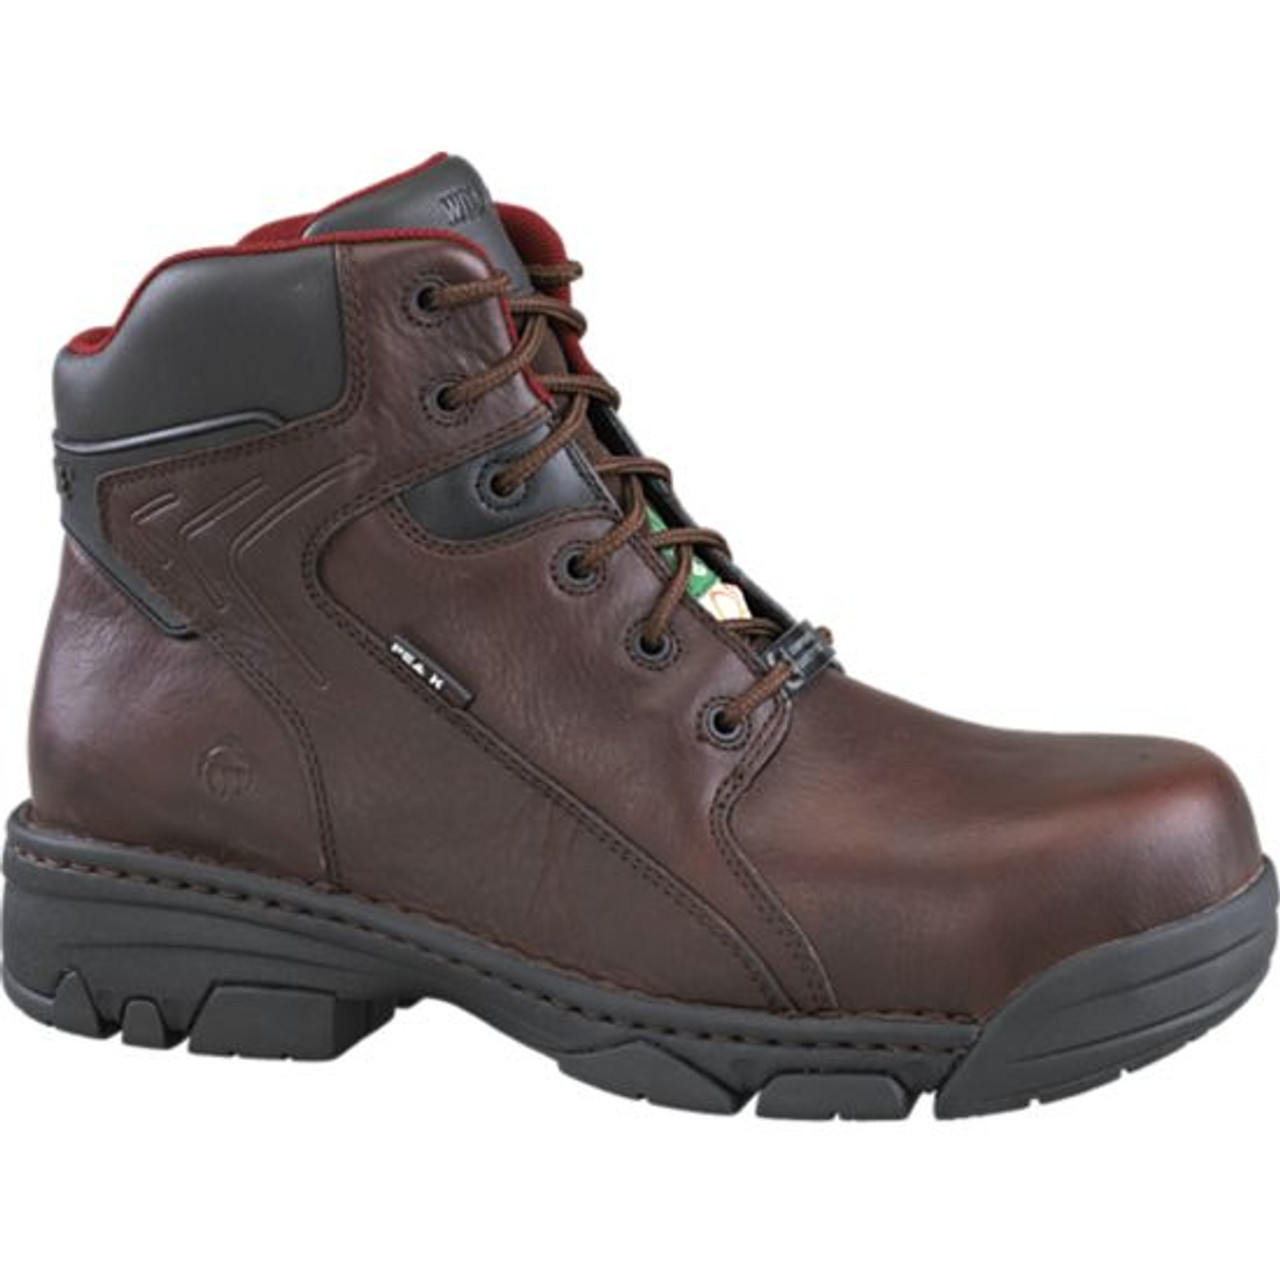 b4d8450f15f Men's Wolverine Falcon Hi CSA Composite Toe Work Boot